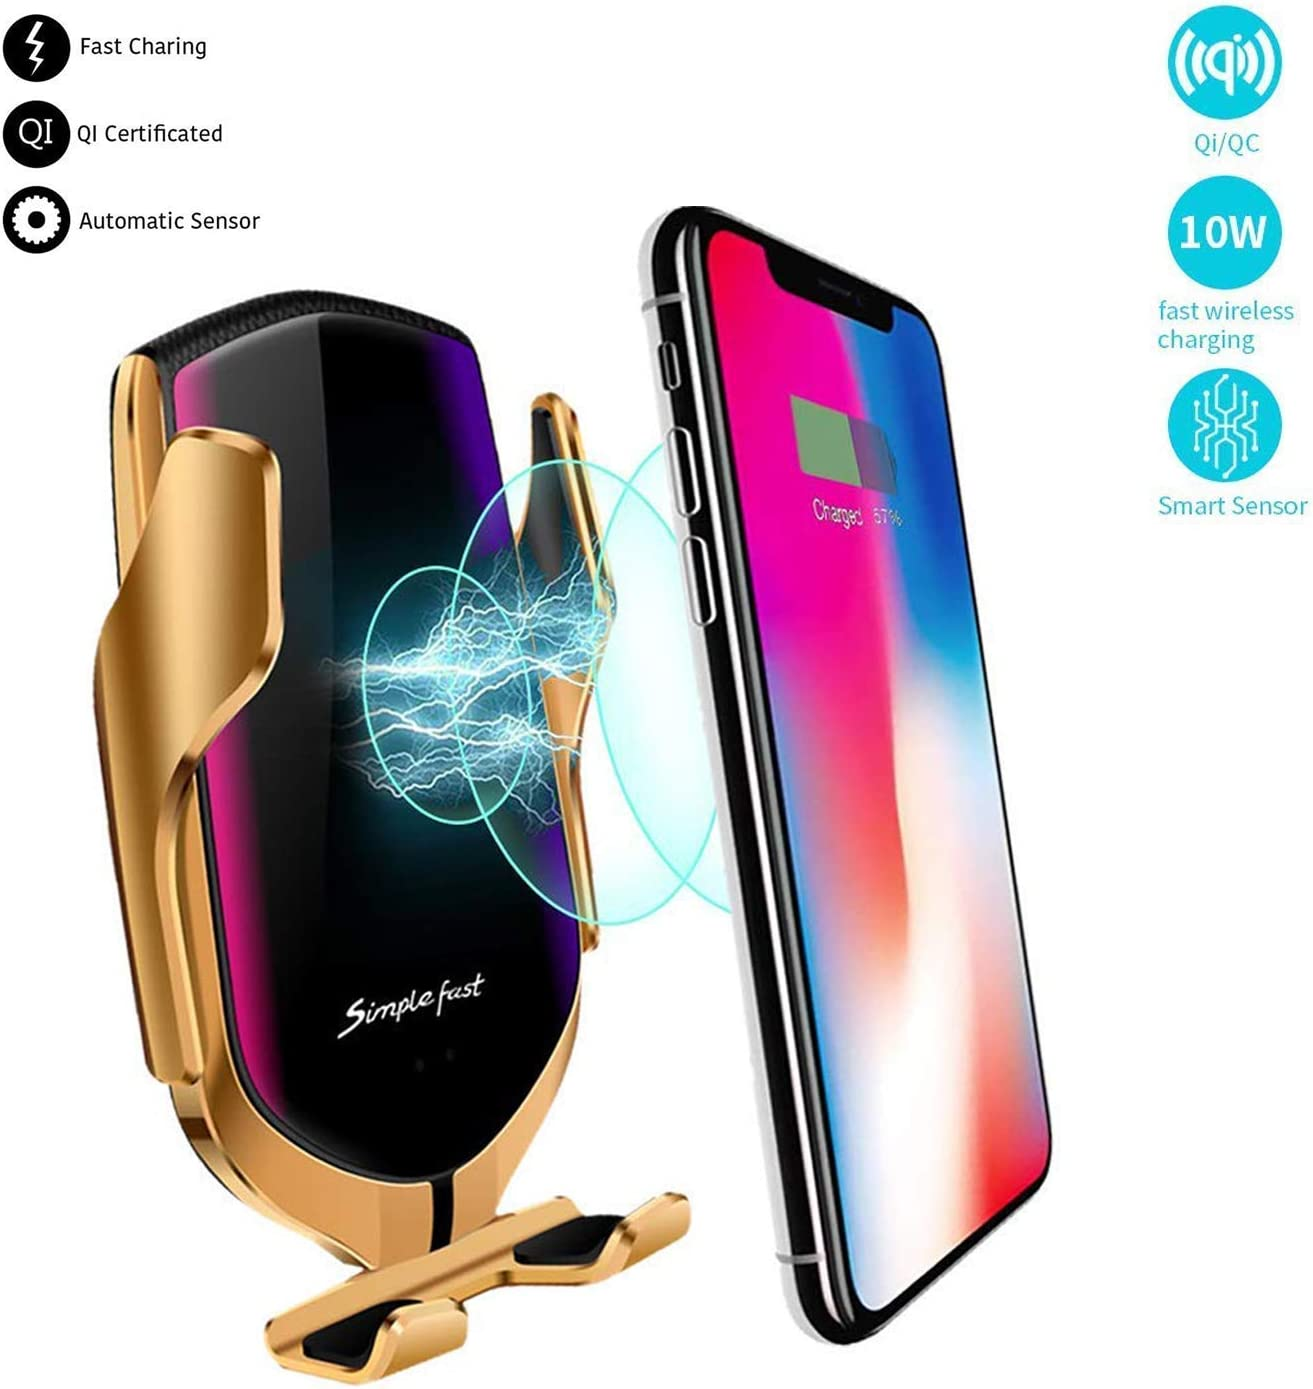 Wireless Car Holder /& Charger for Cell Phones Magnetic with Automatic Clamping /& Sensing Qi 10W Fast Charging Gold iPhone,Samsung,Lg /& Most Smartphones. Air Vent Mount